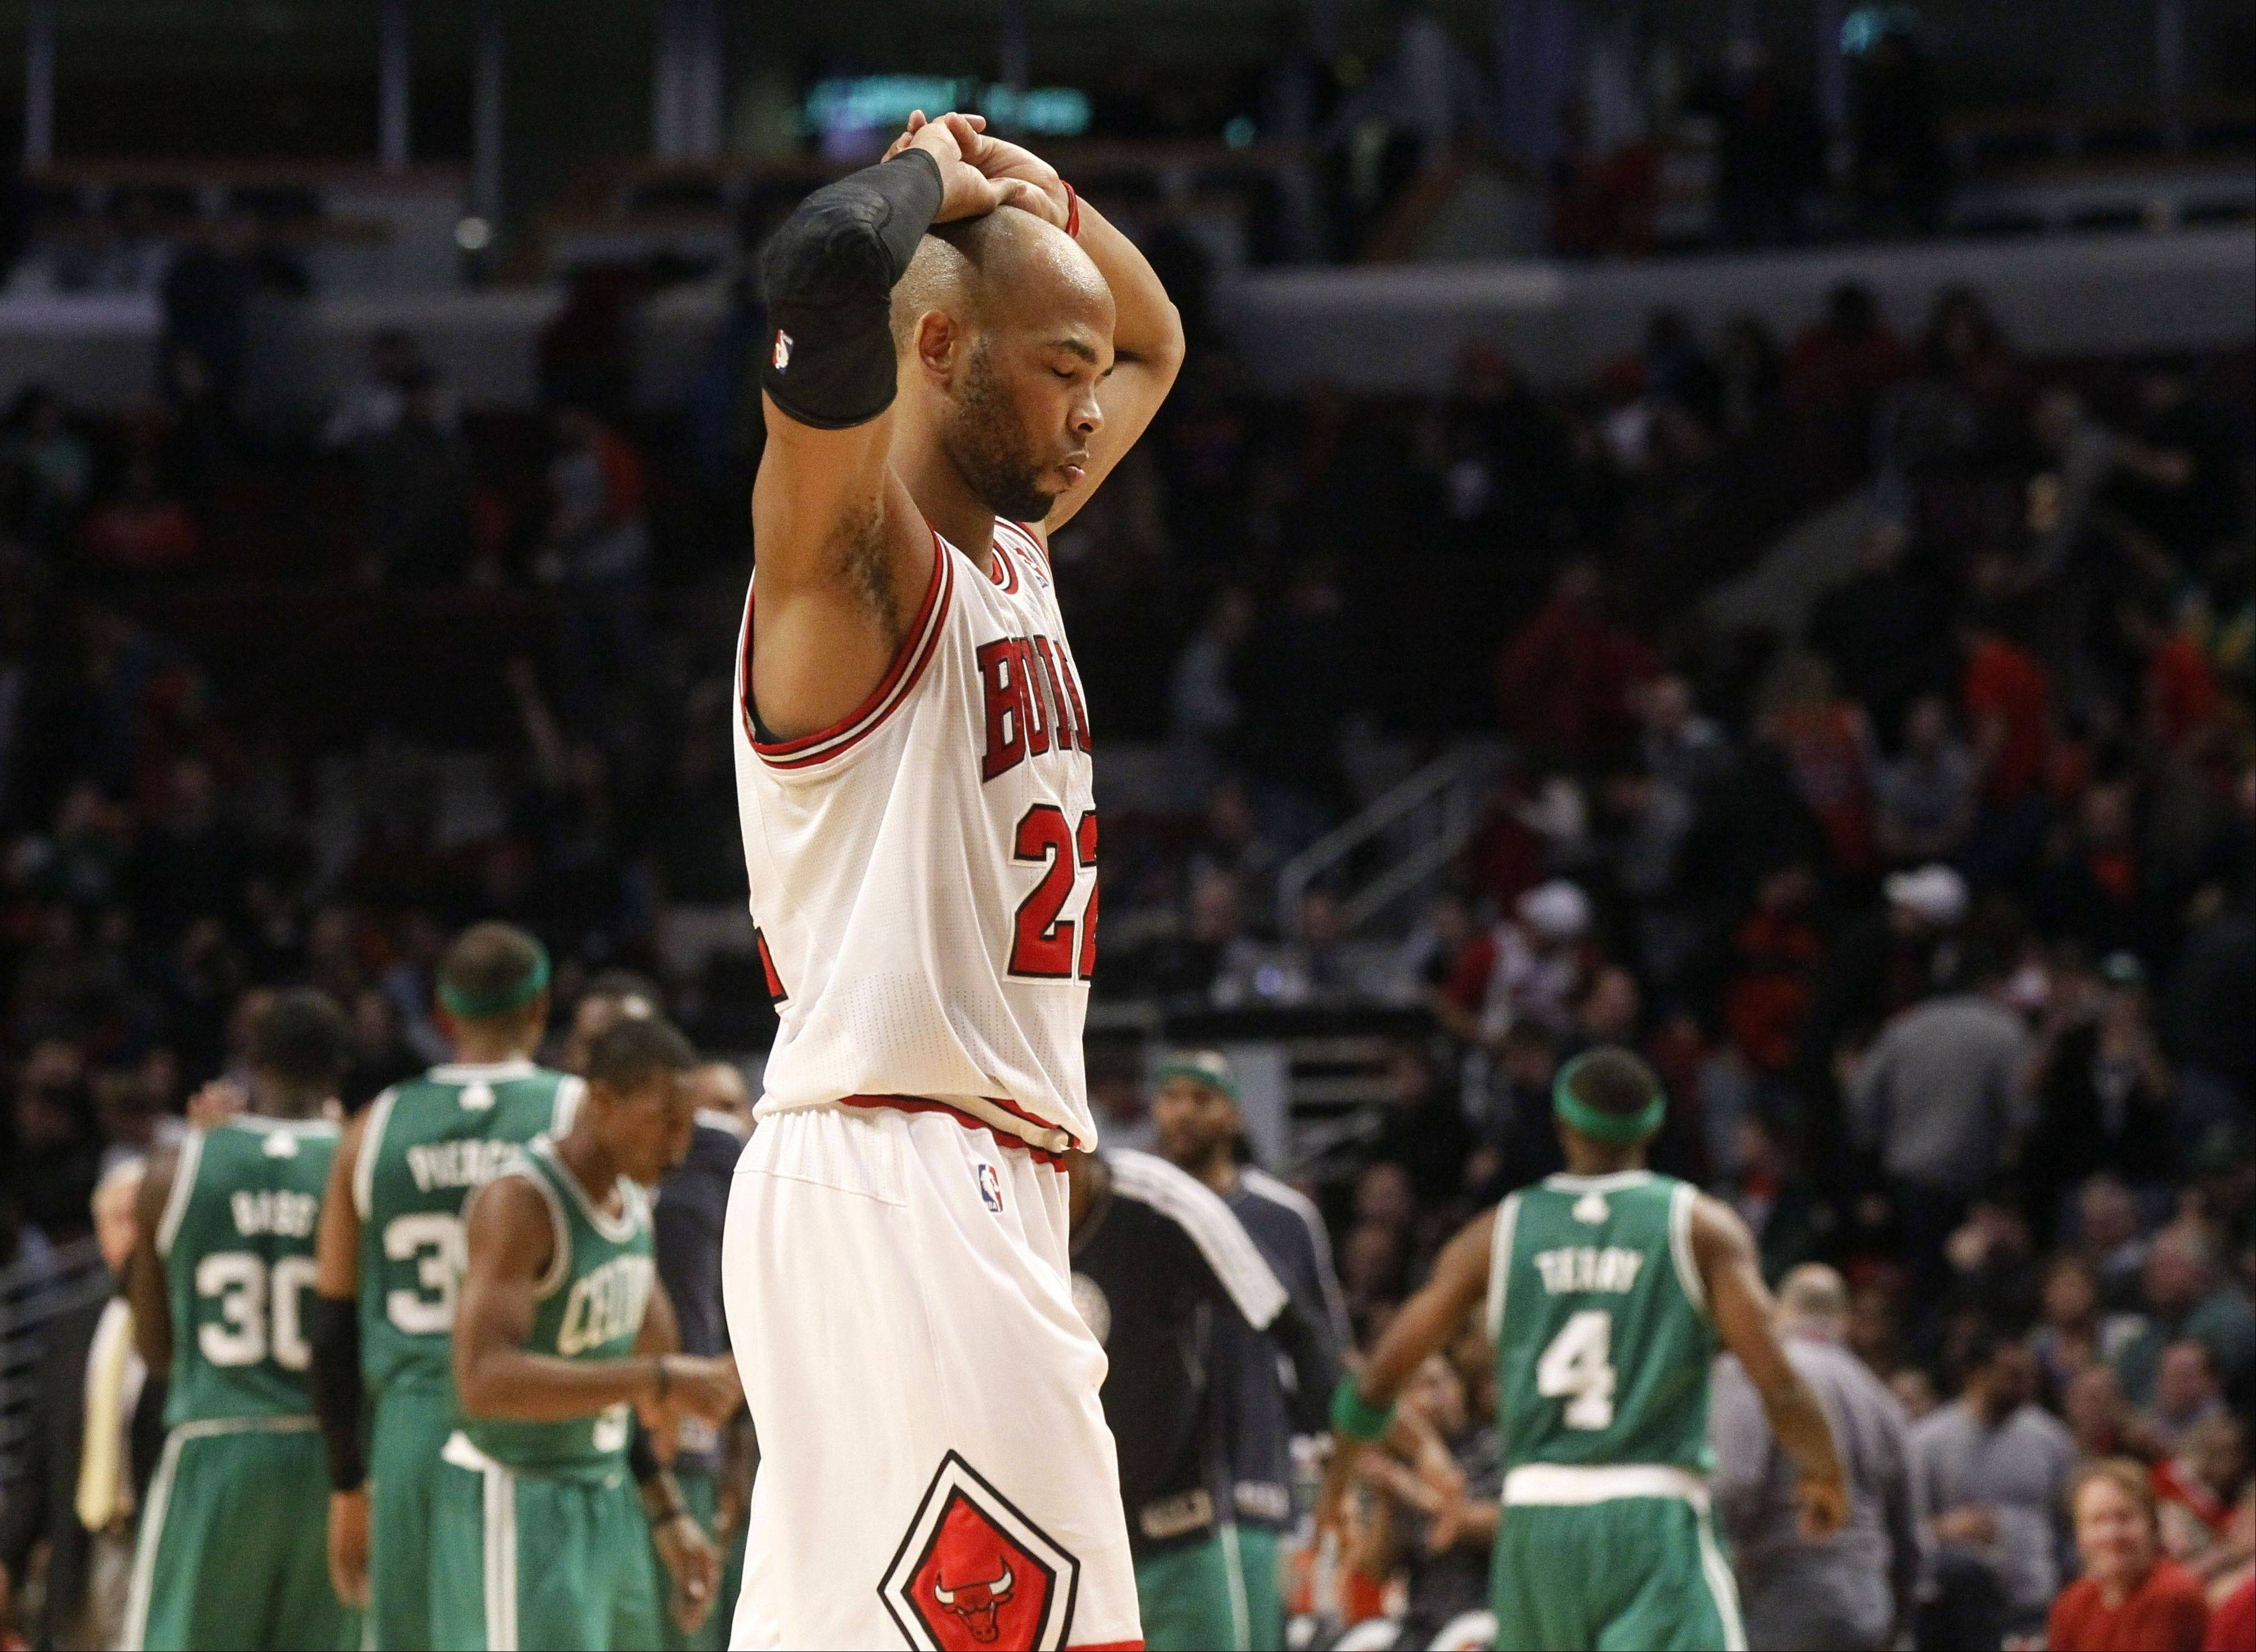 Bulls forward Taj Gibson walks back to the bench during a timeout during the closing seconds of Monday night's loss.